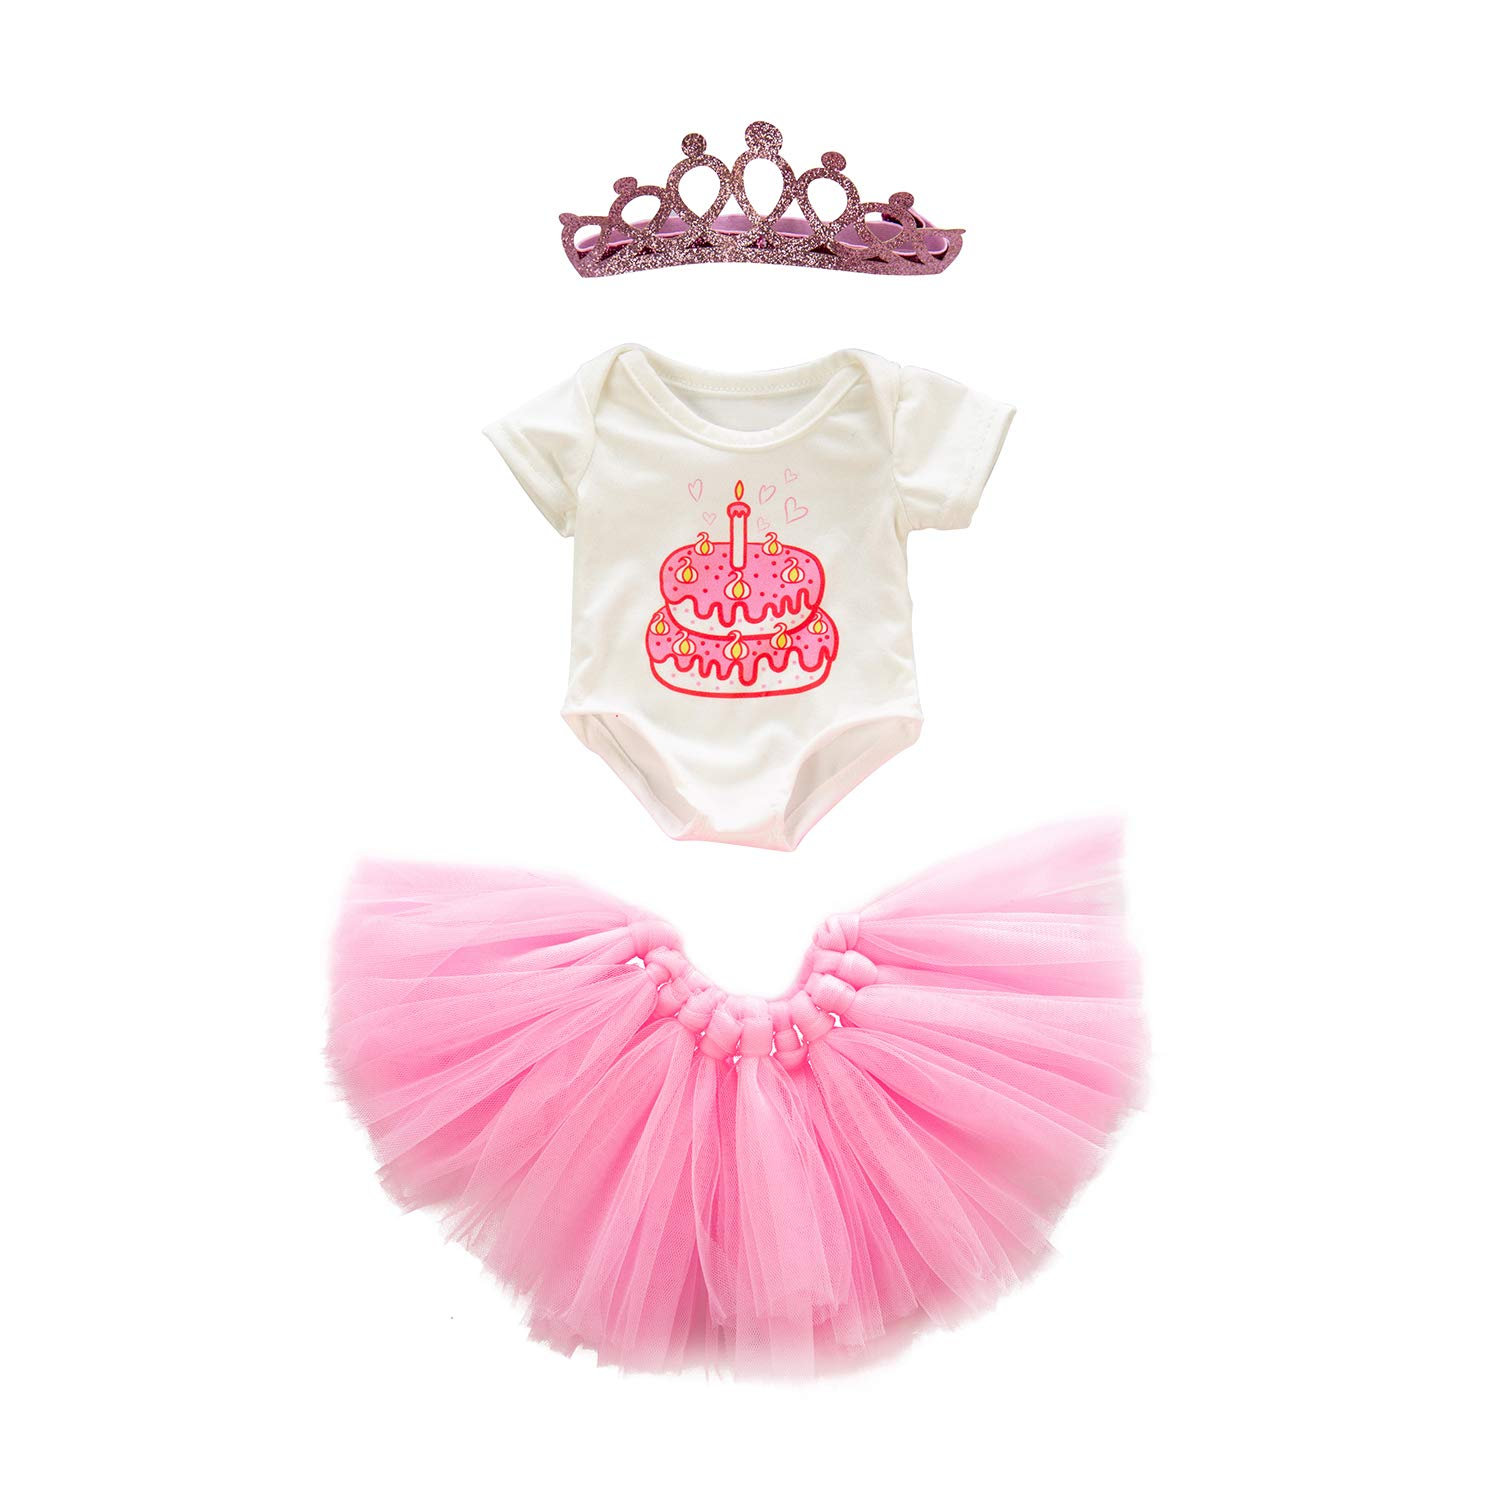 Tutu Dress Jumpsuit ZITA ELEMENT 18 Inch Doll Clothes Outfits Accessories Hairclip for American 18 Inch Girl Doll Hair Clip for 14-16 Inch Baby Doll